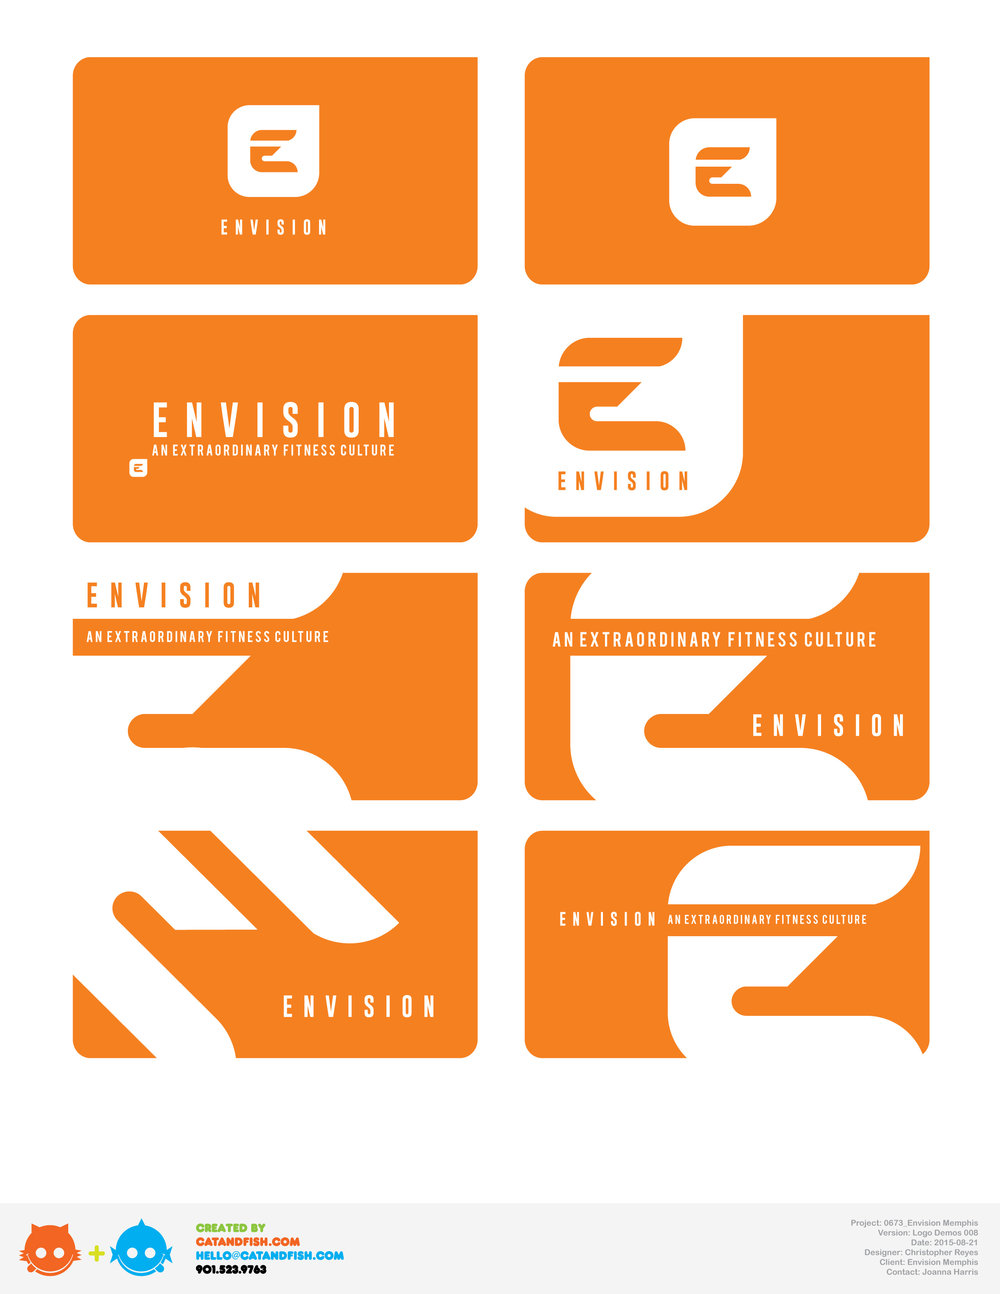 Envision-Memphis---Business-cards.jpg